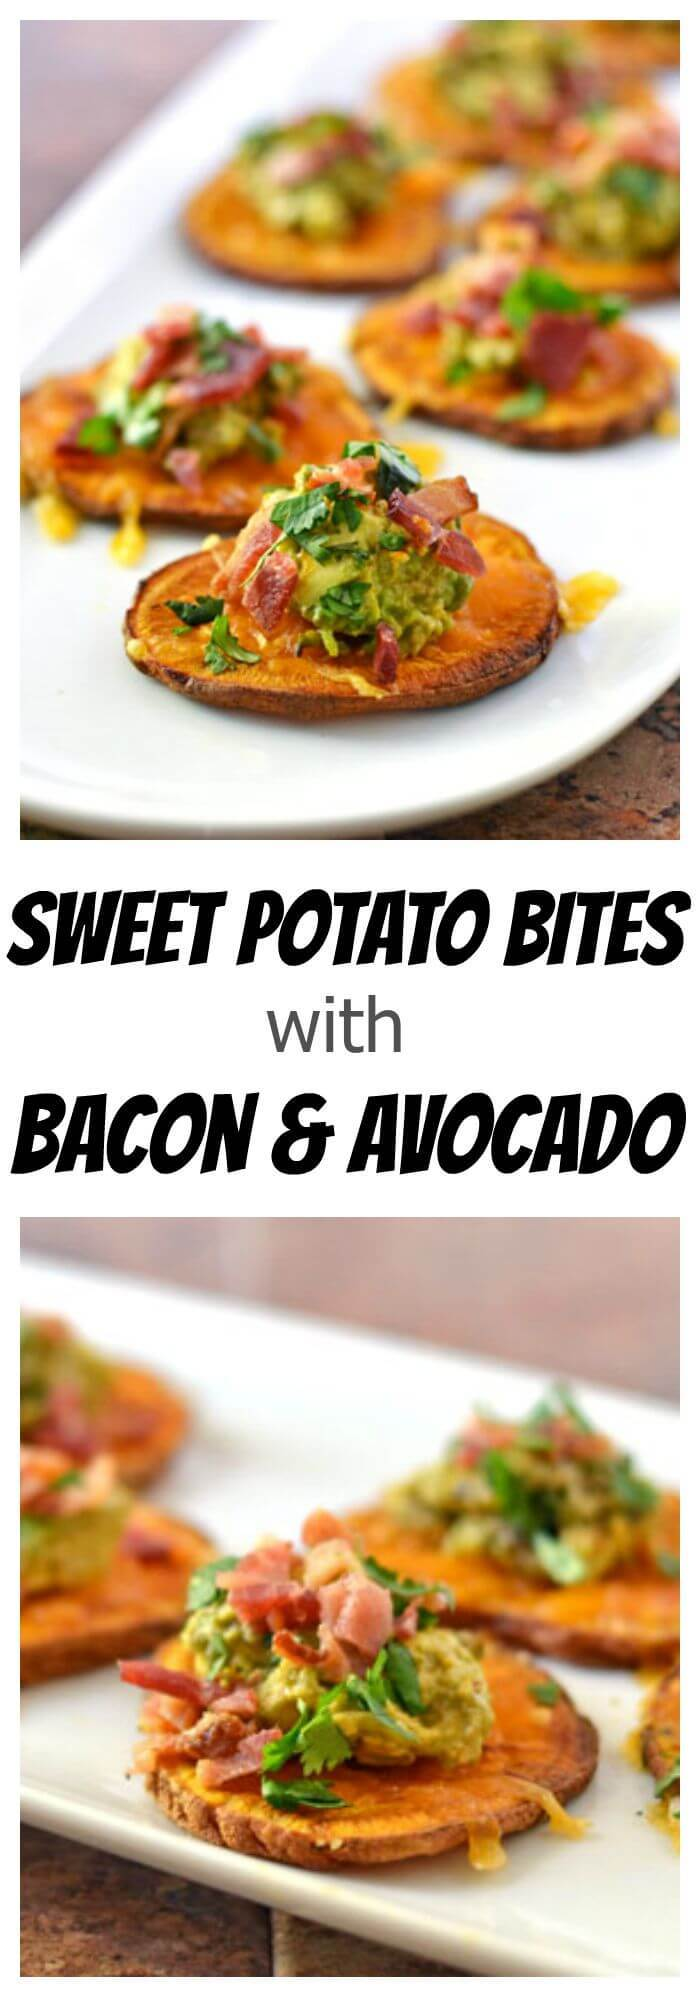 Sweet Potato Bites with Avocado and Bacon